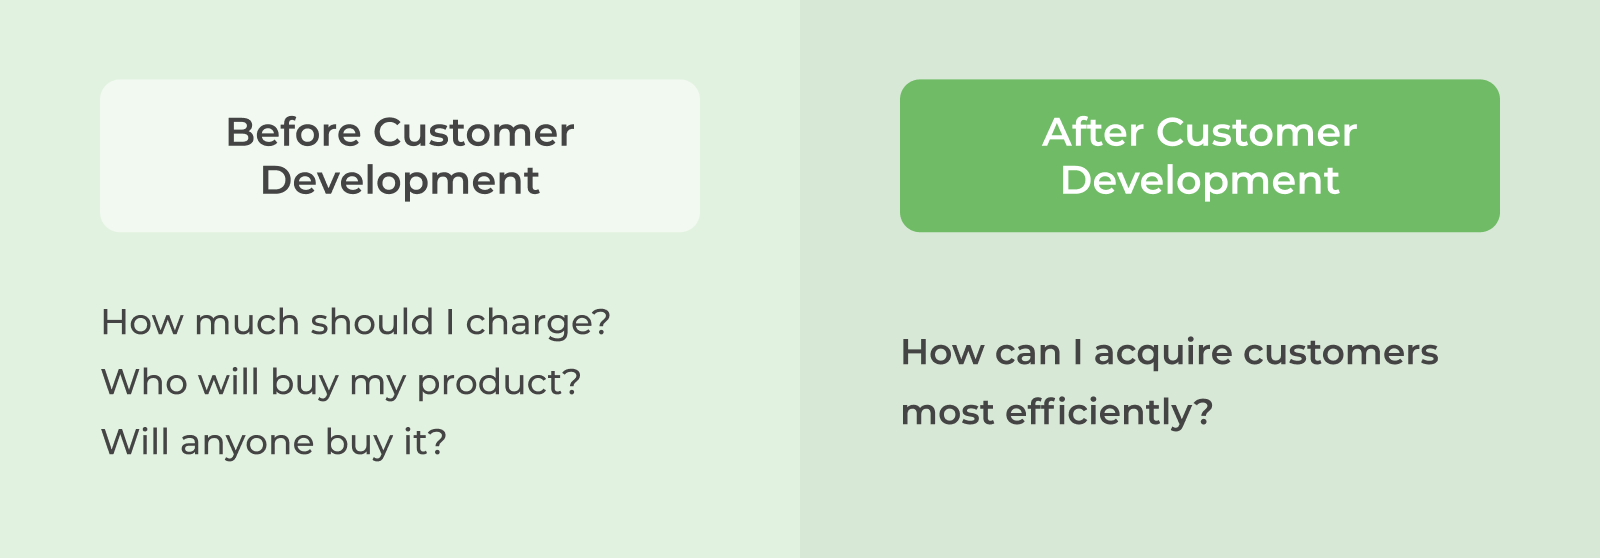 Before Customer Development: How much should I charge? Who will buy my product? Will anyone buy it?; After Customer Development: How can I acquire customers most efficiently?